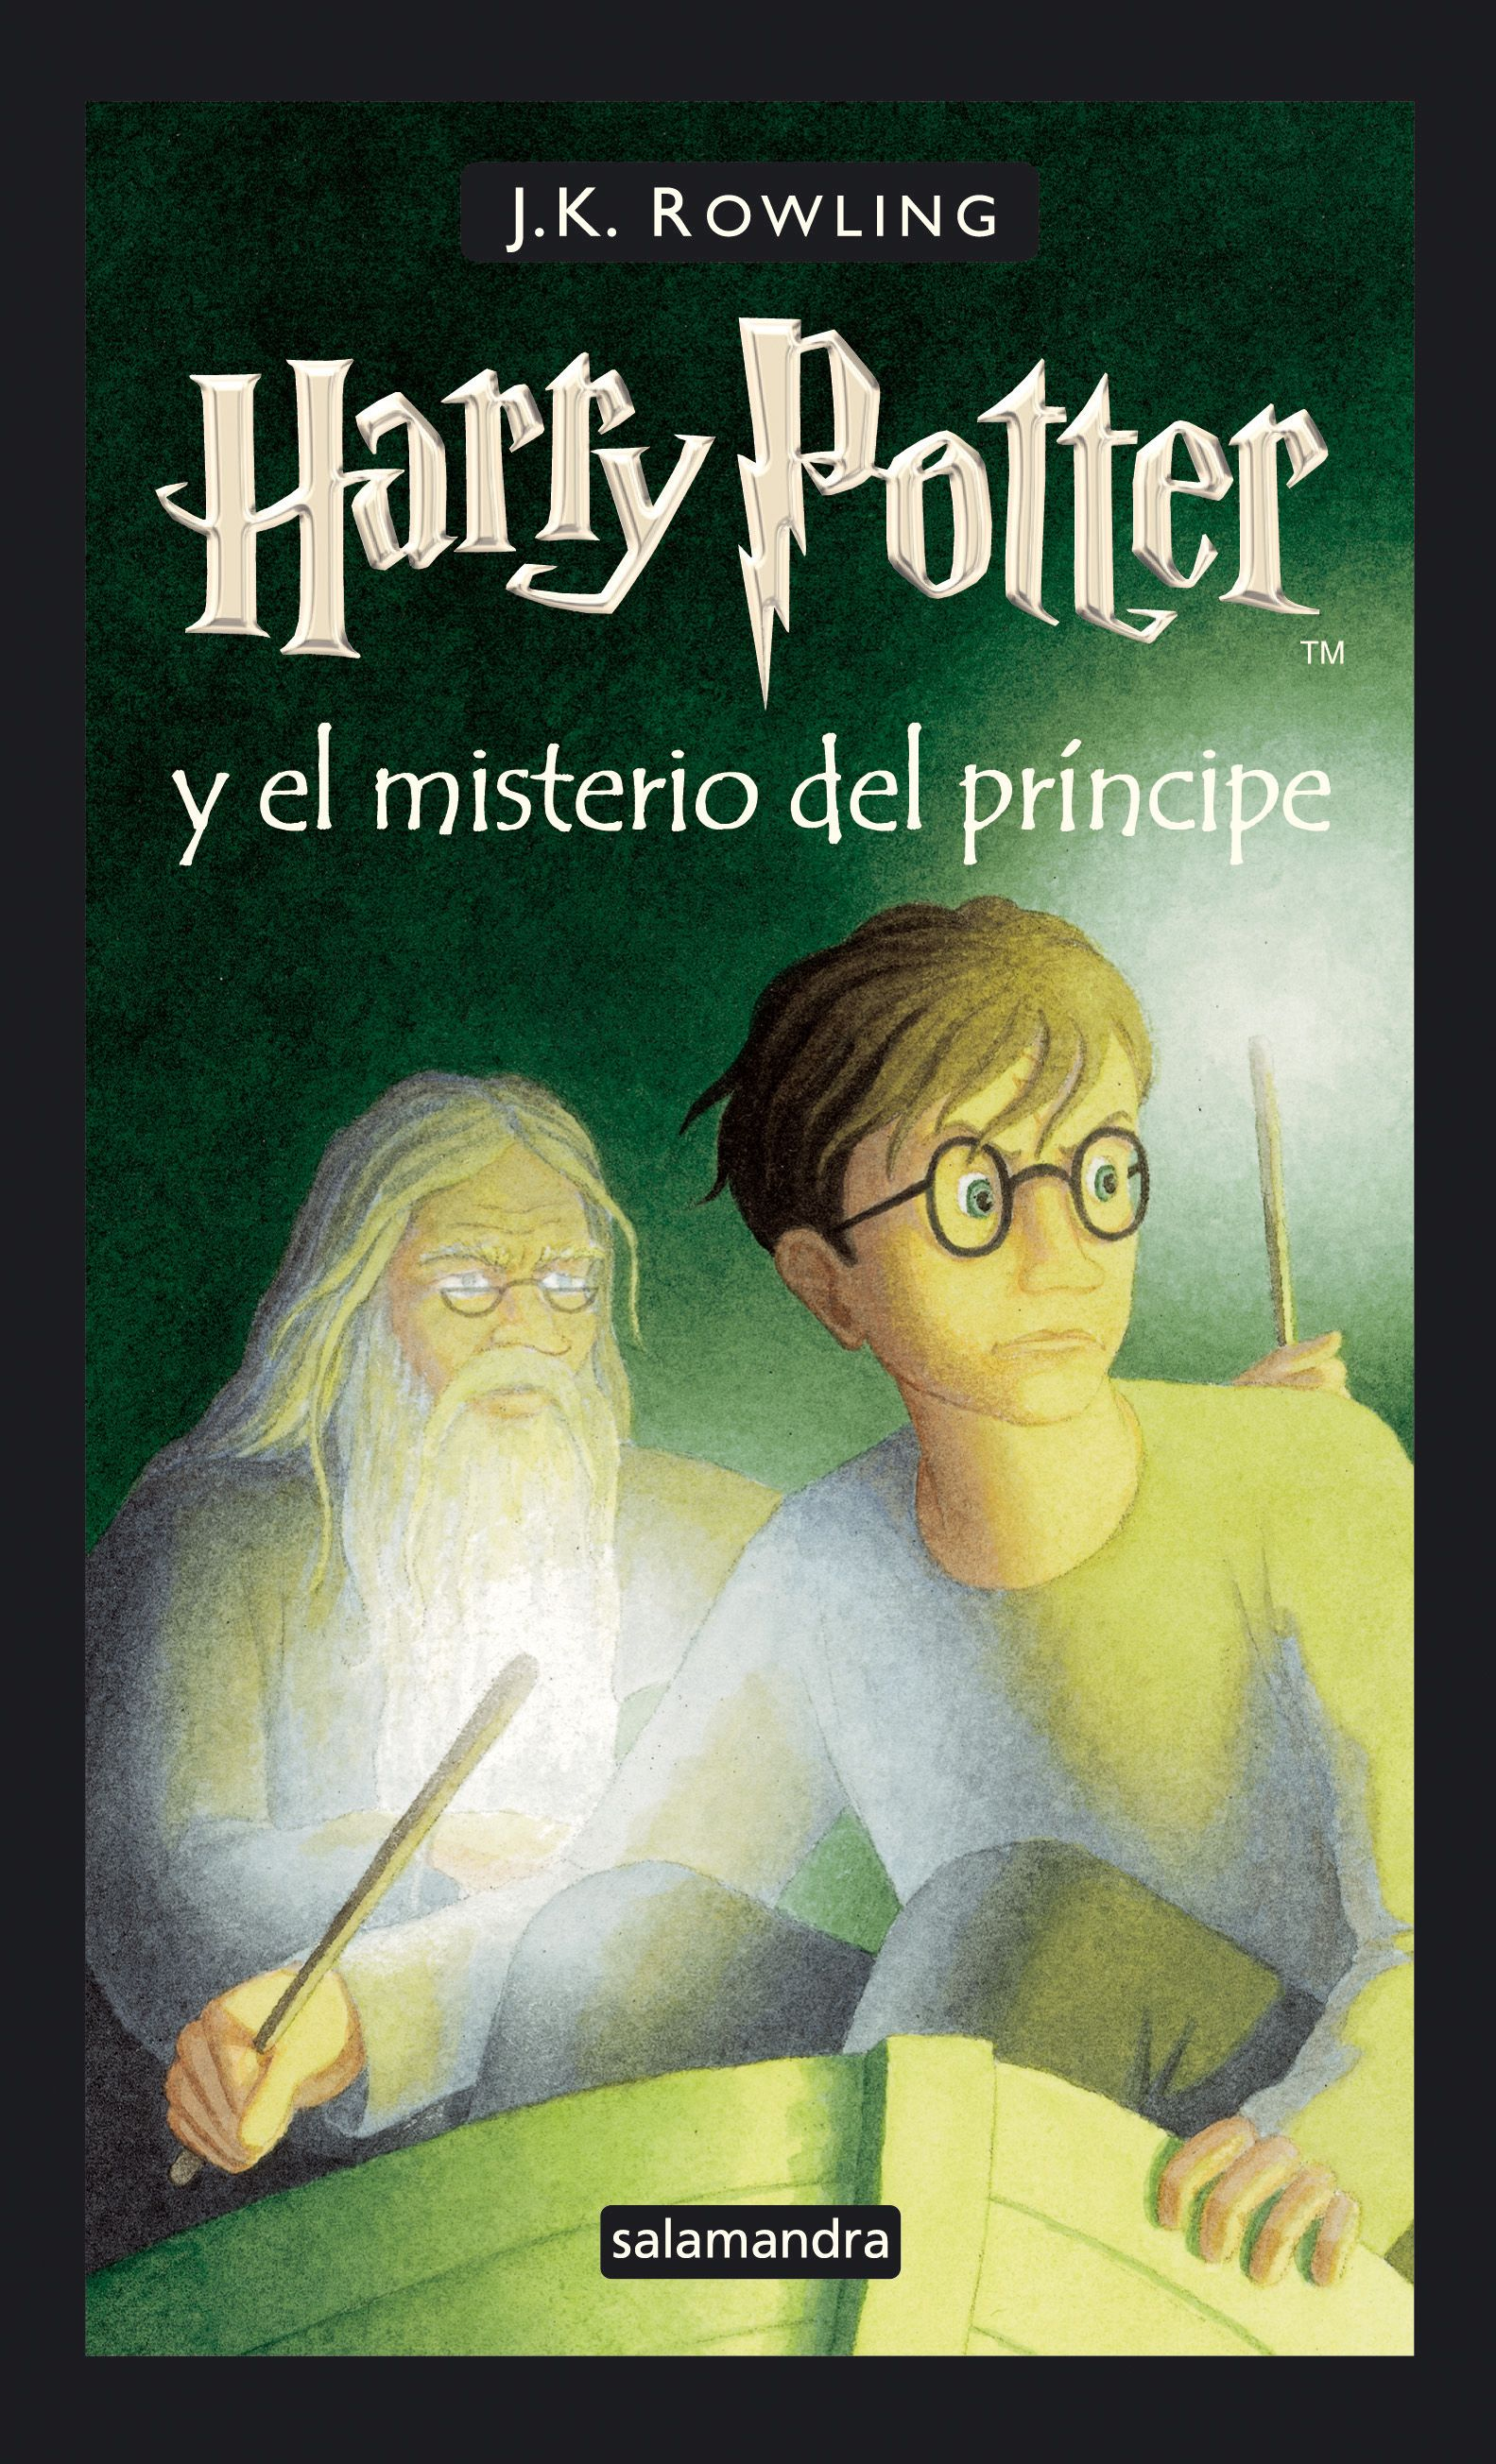 Leer Libros De Harry Potter Online Gratis Descargar Los 11 Libros De Harry Potter Completos En Pdf Por